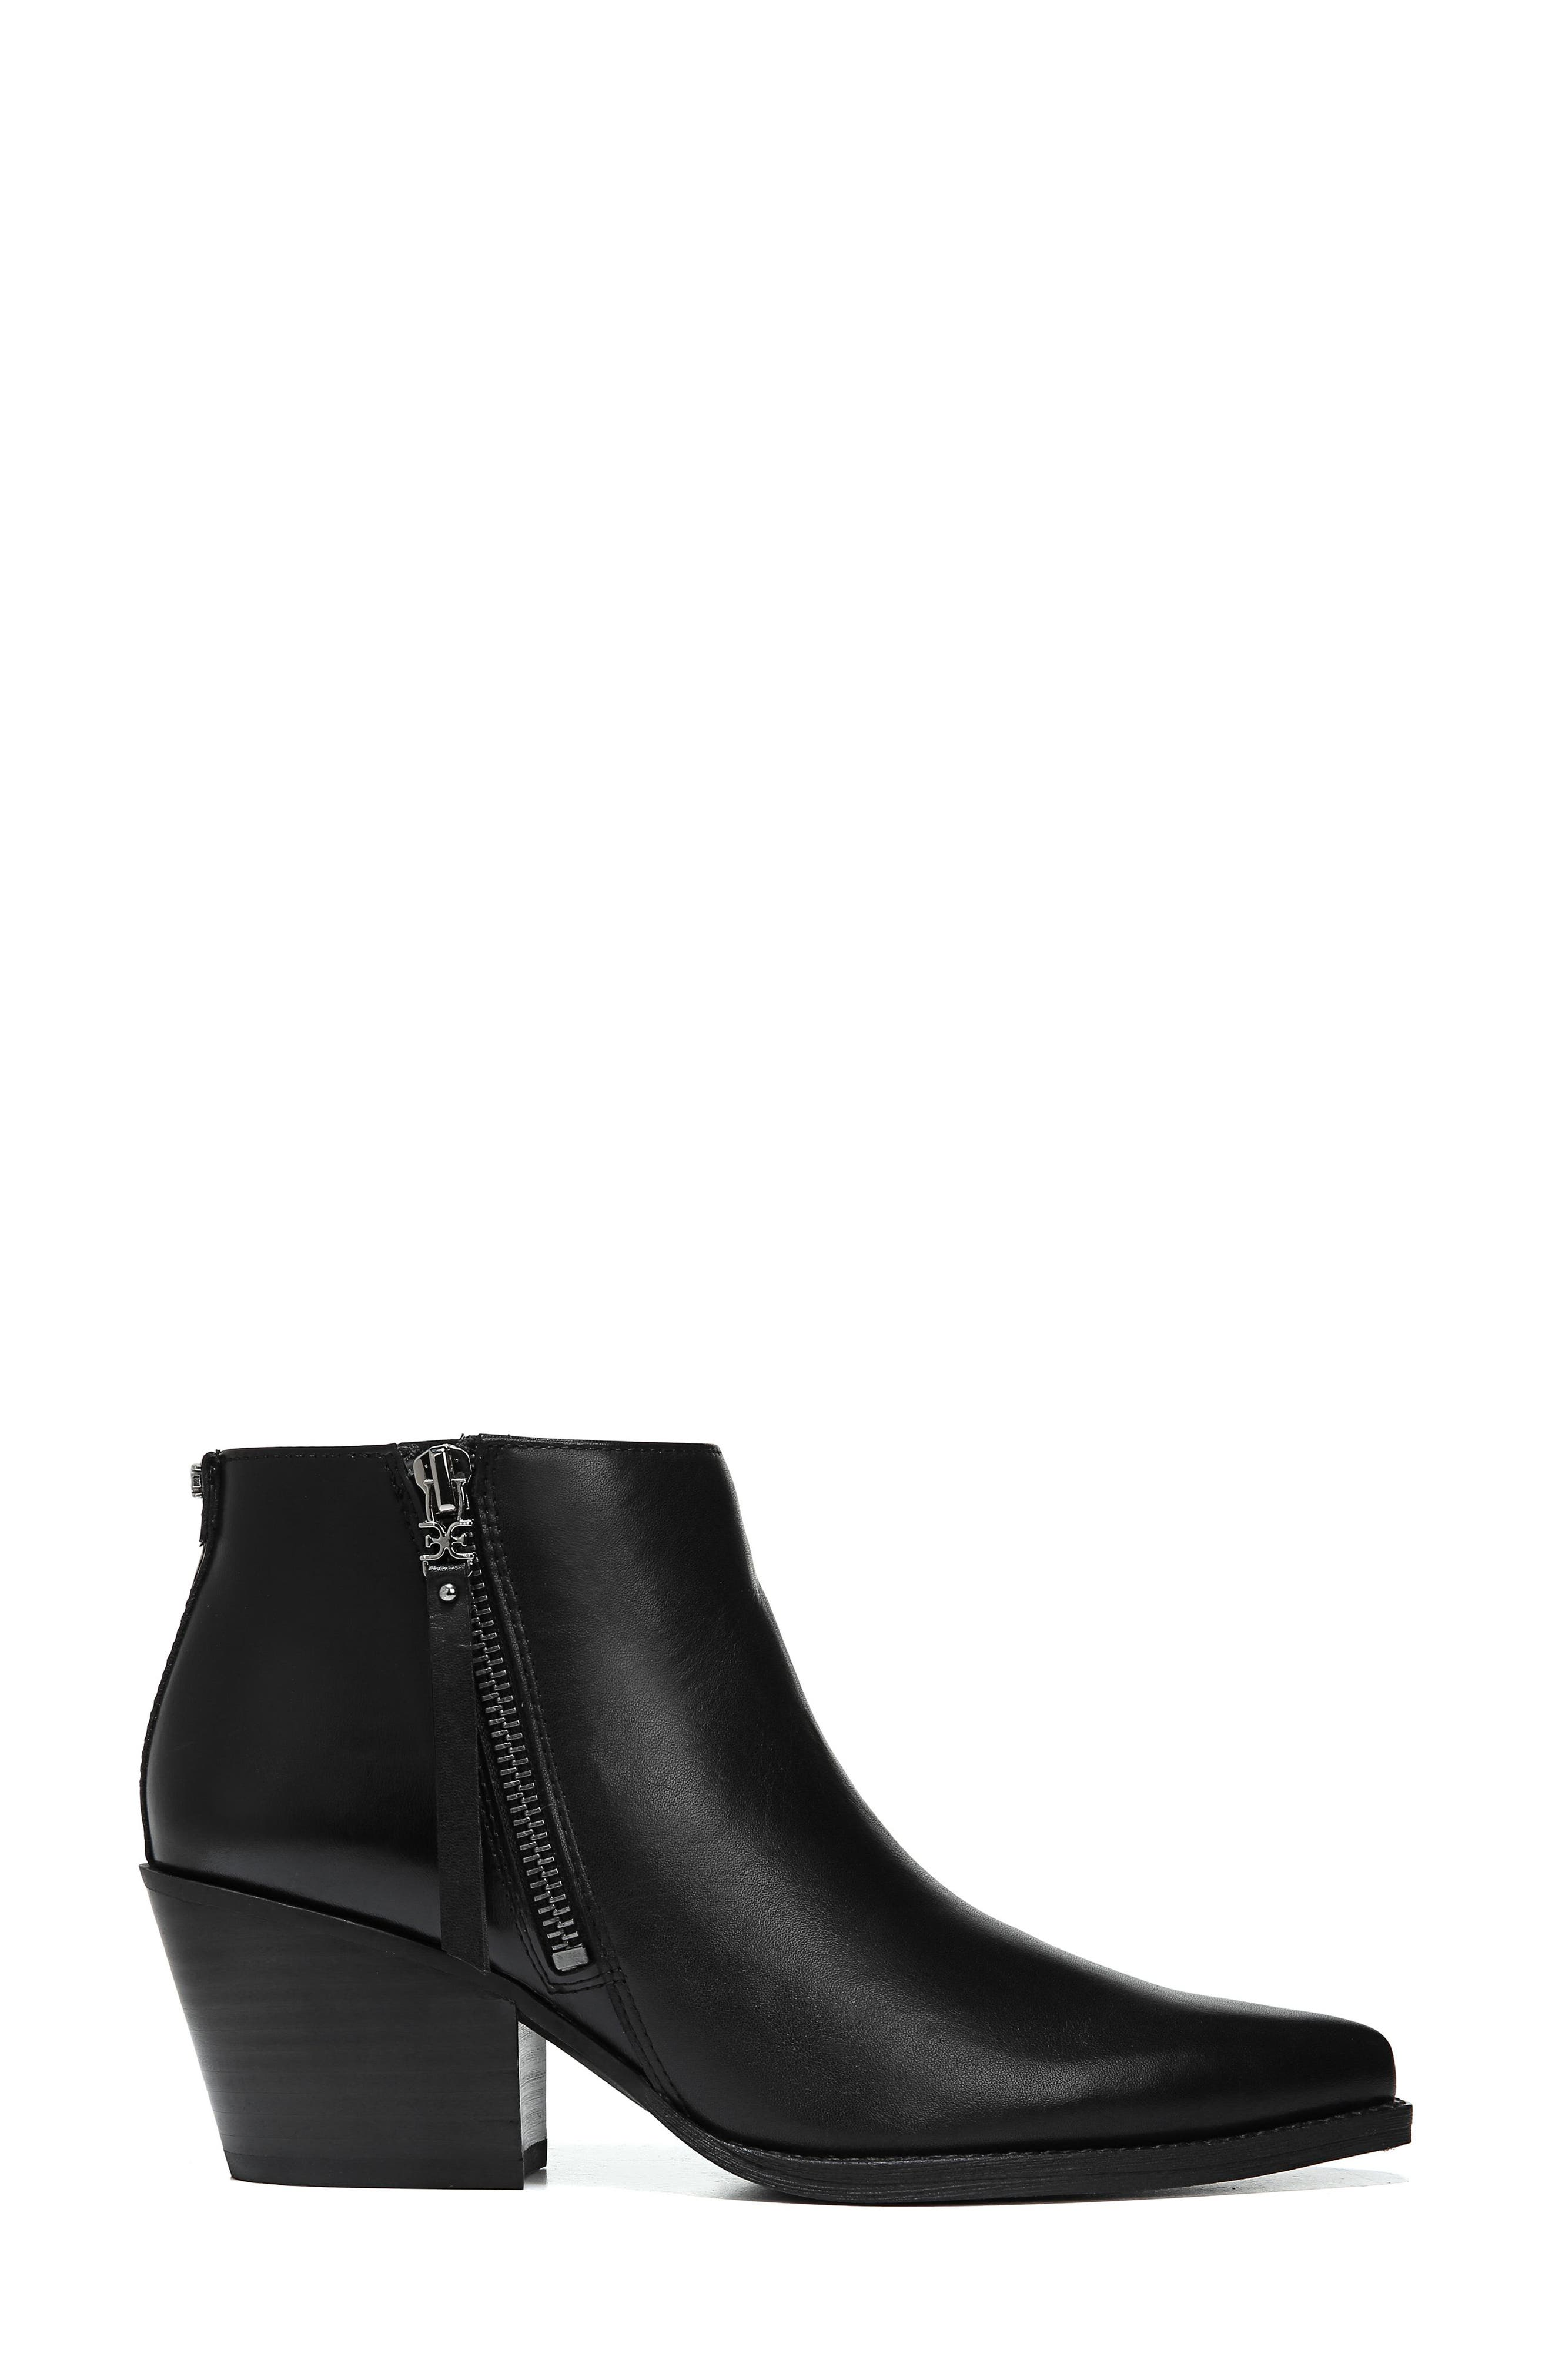 Walden Bootie,                             Alternate thumbnail 3, color,                             BLACK LEATHER